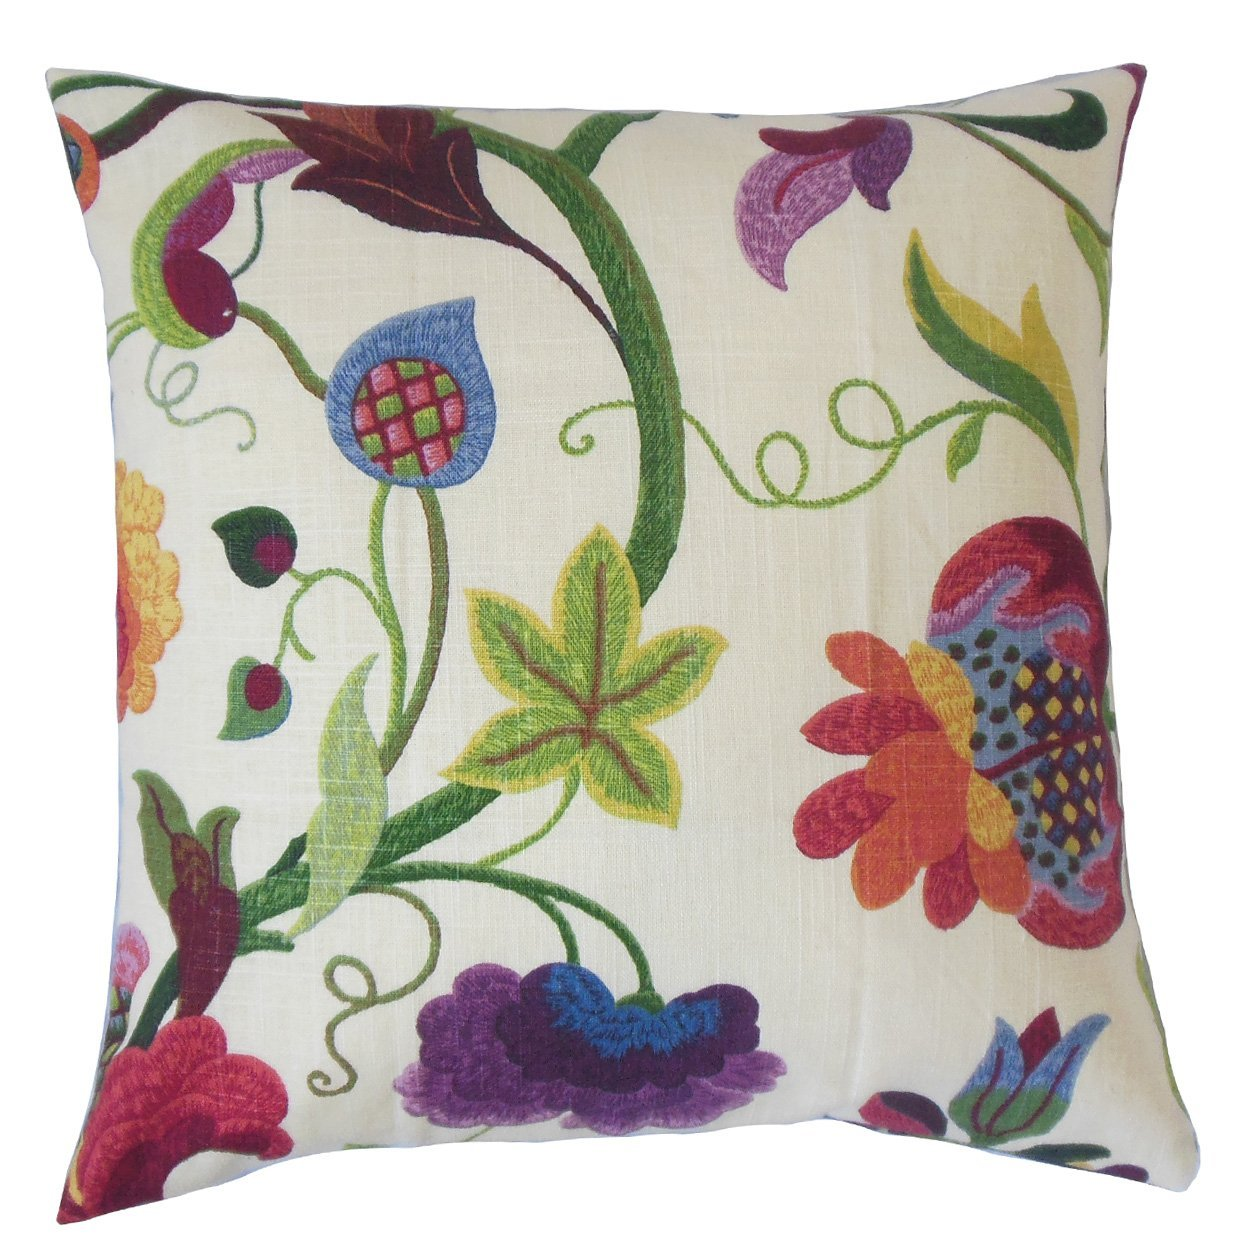 The Pillow Collection Hesperia Floral Bedding Sham Red Jade Queen/20\' x 30\'